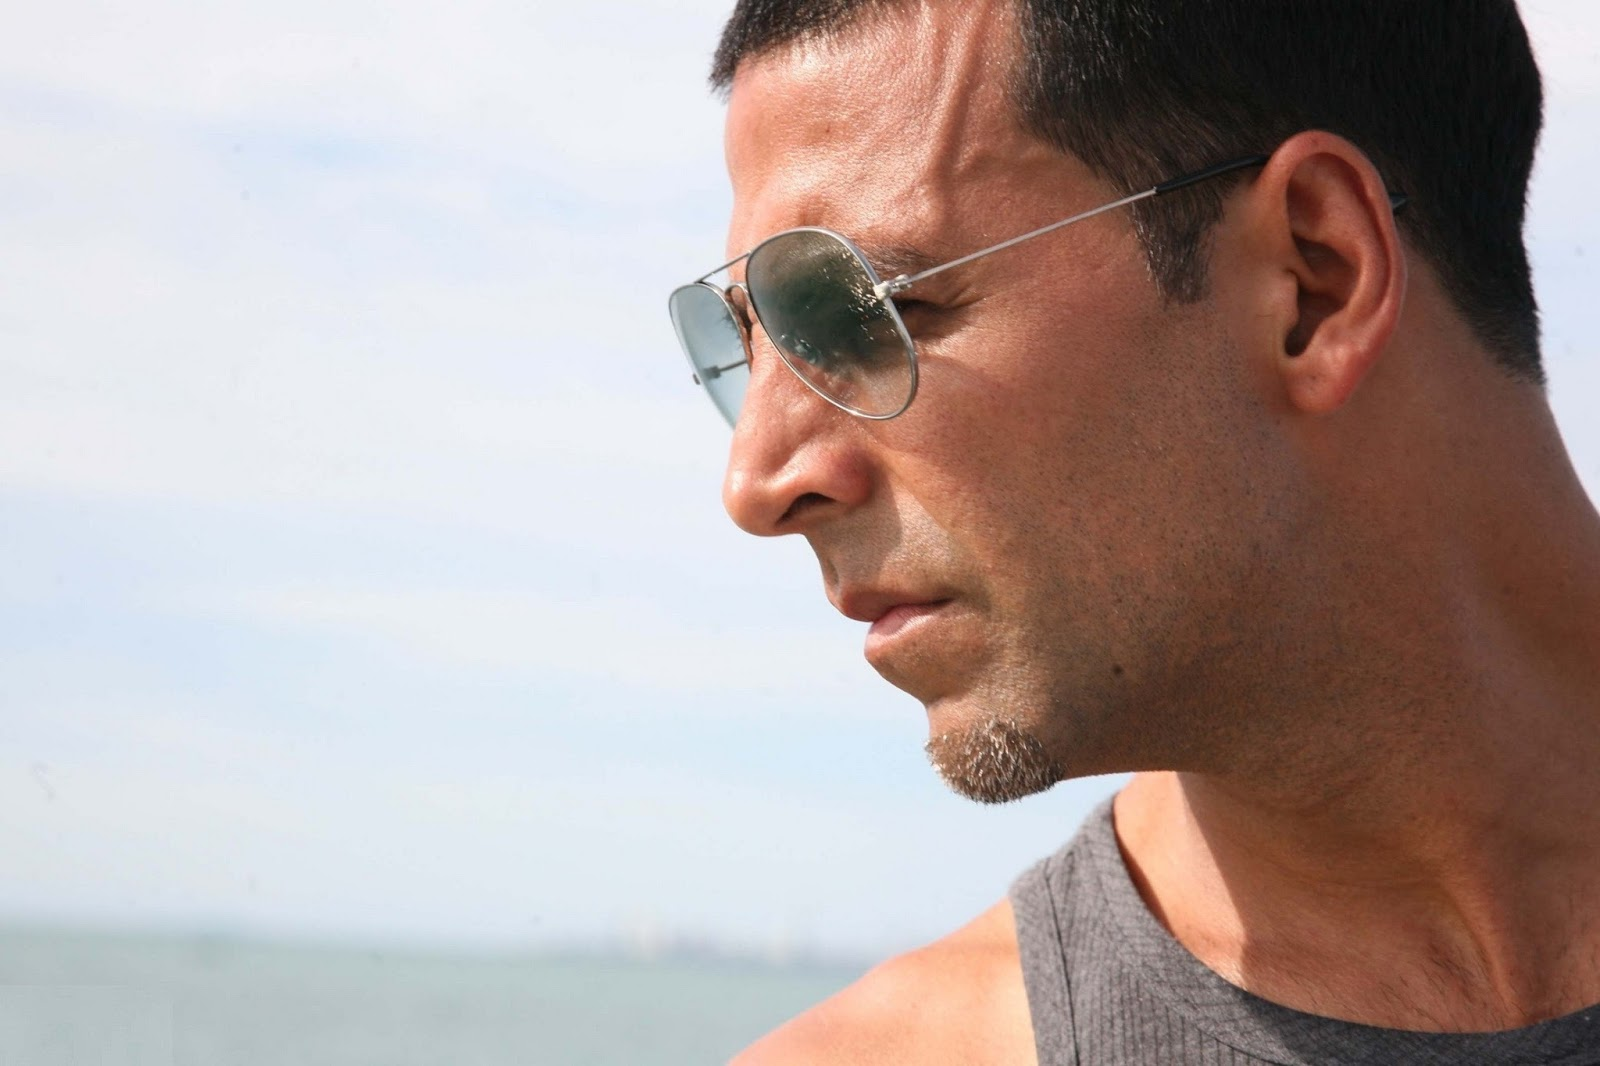 ray ban lowest price sunglasses  Akshay kumar\u0027s Ray Ban sunglasses as his style Buy here Rayban at ...